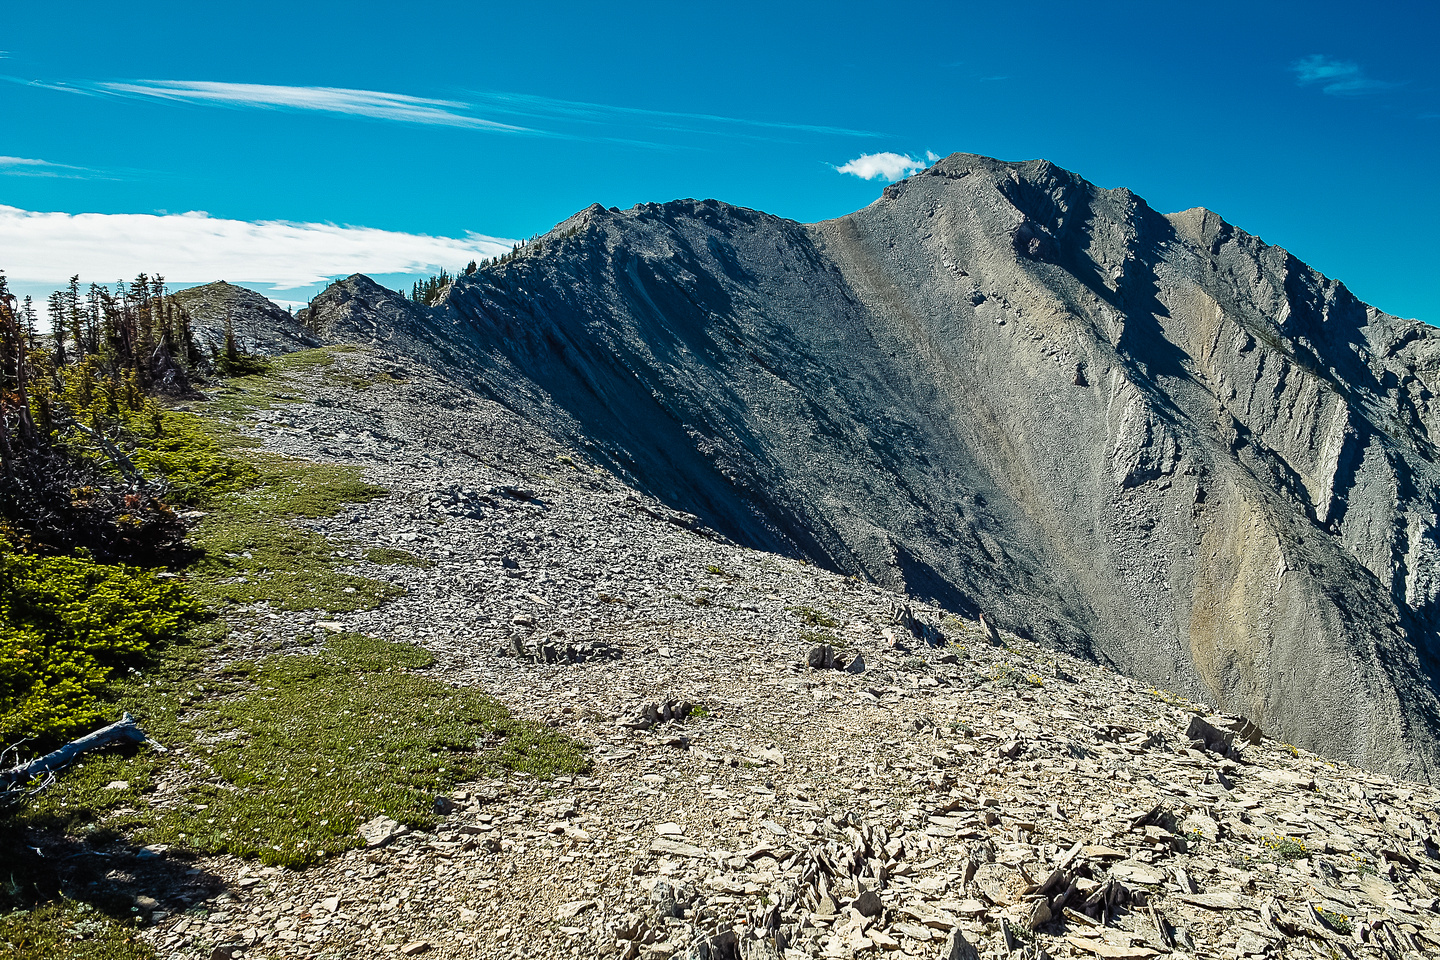 Incredible views and easy hiking keep me entertained as I look ahead to the summit.